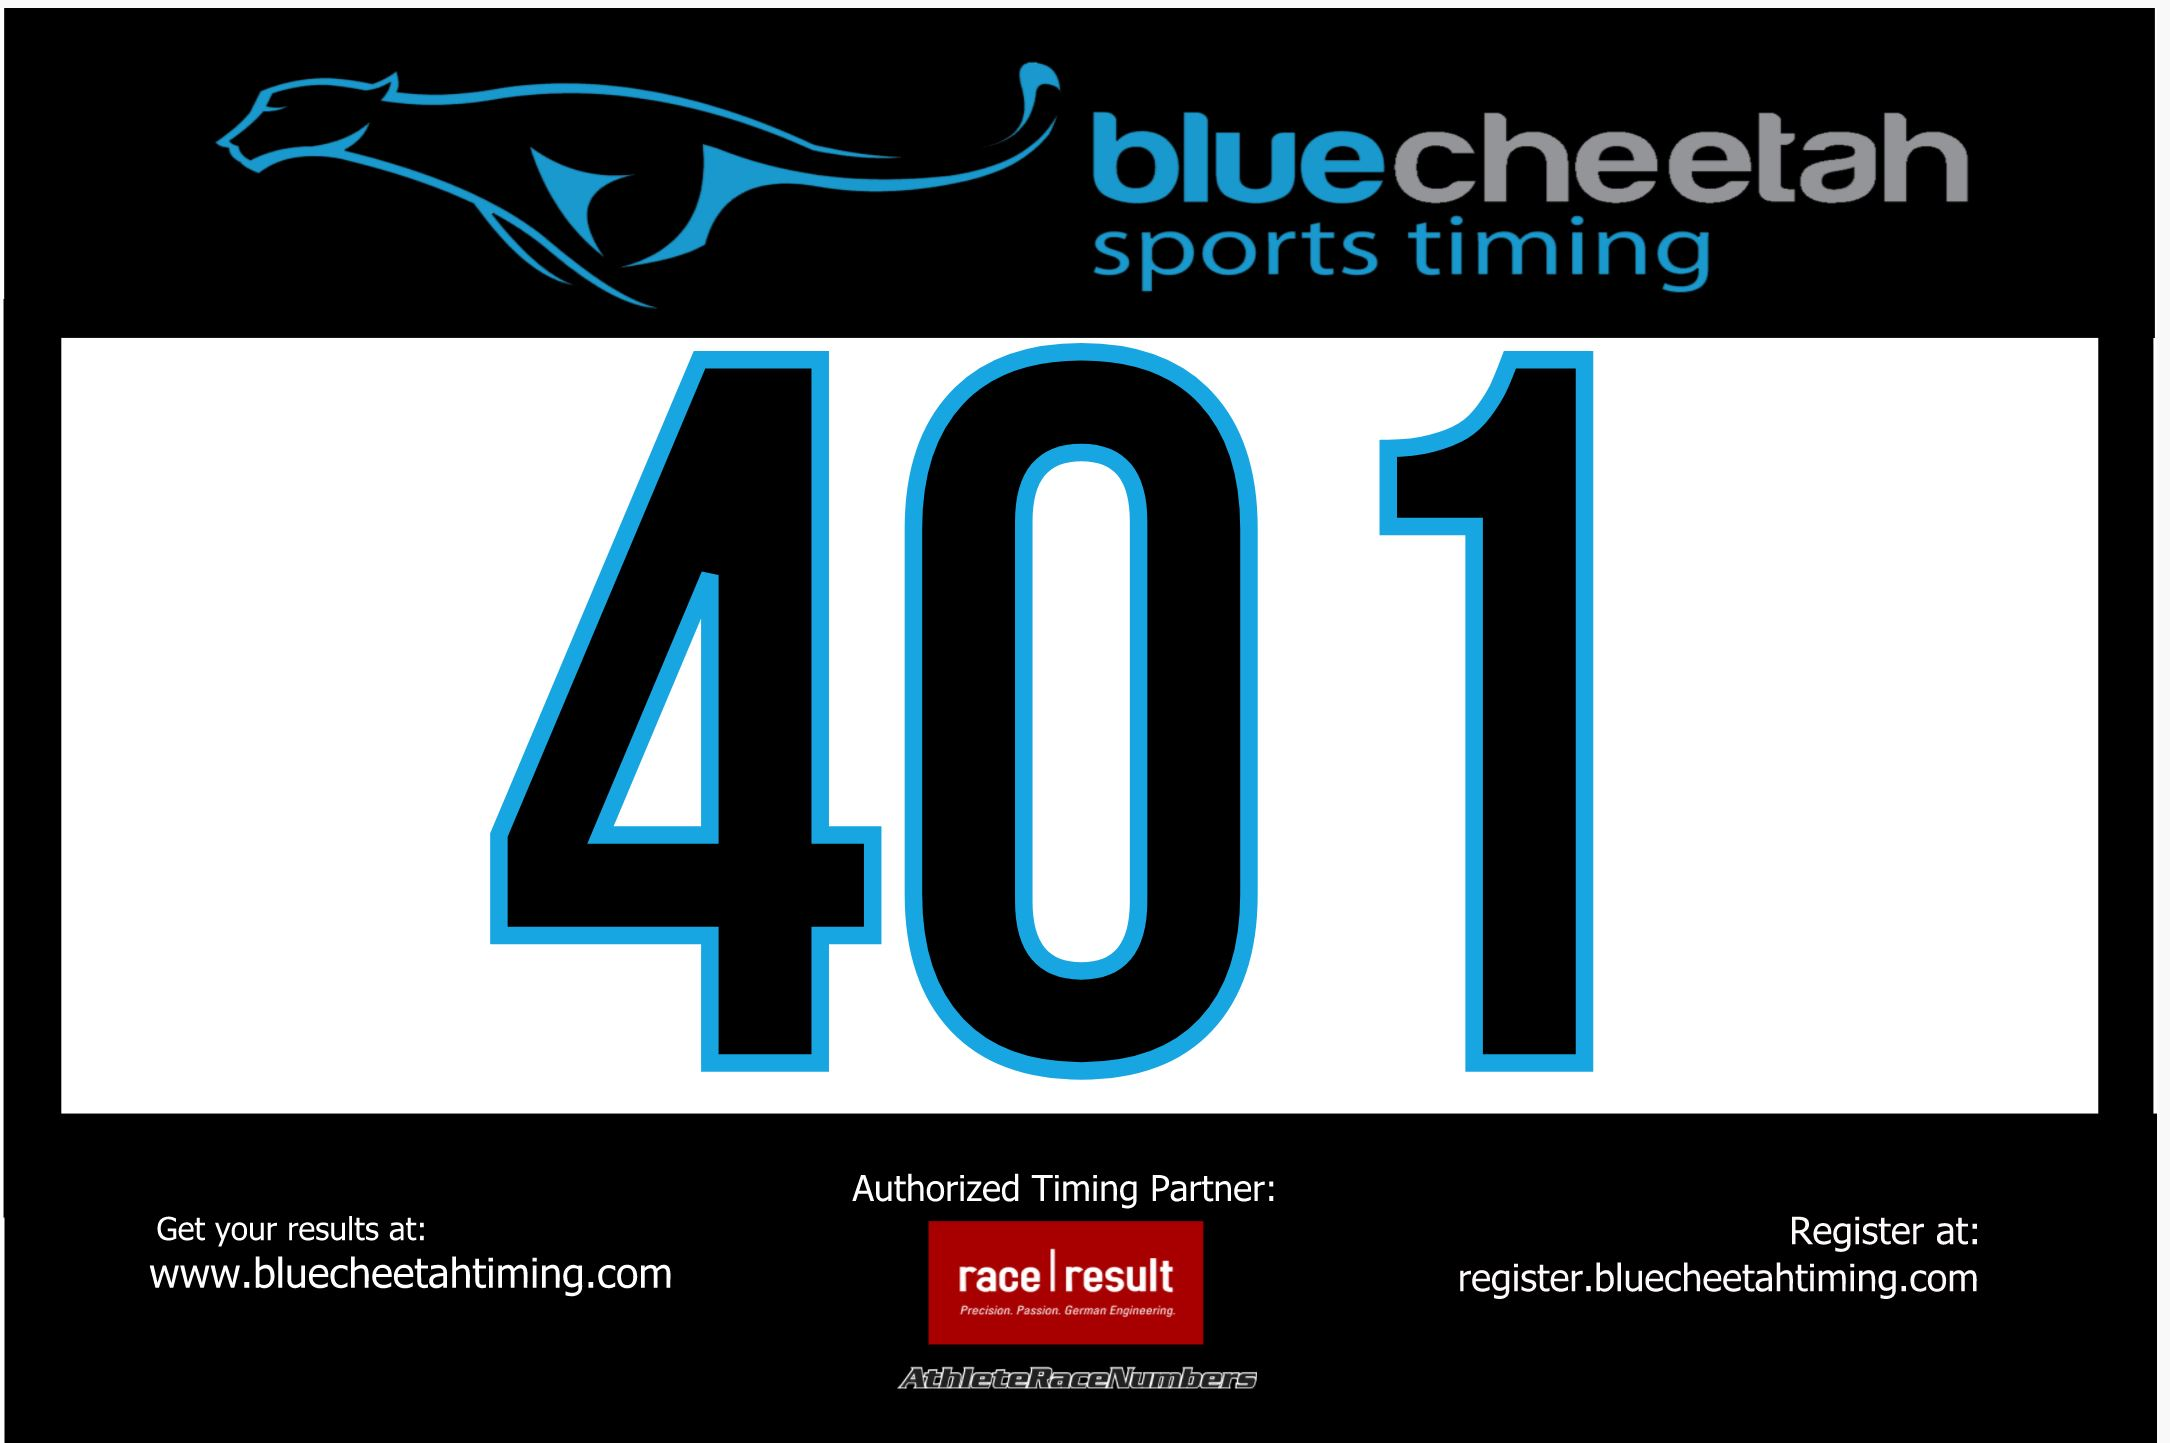 2170x1443 Blue Cheetah Offers Personal Results On Site Blue Cheetah Sports